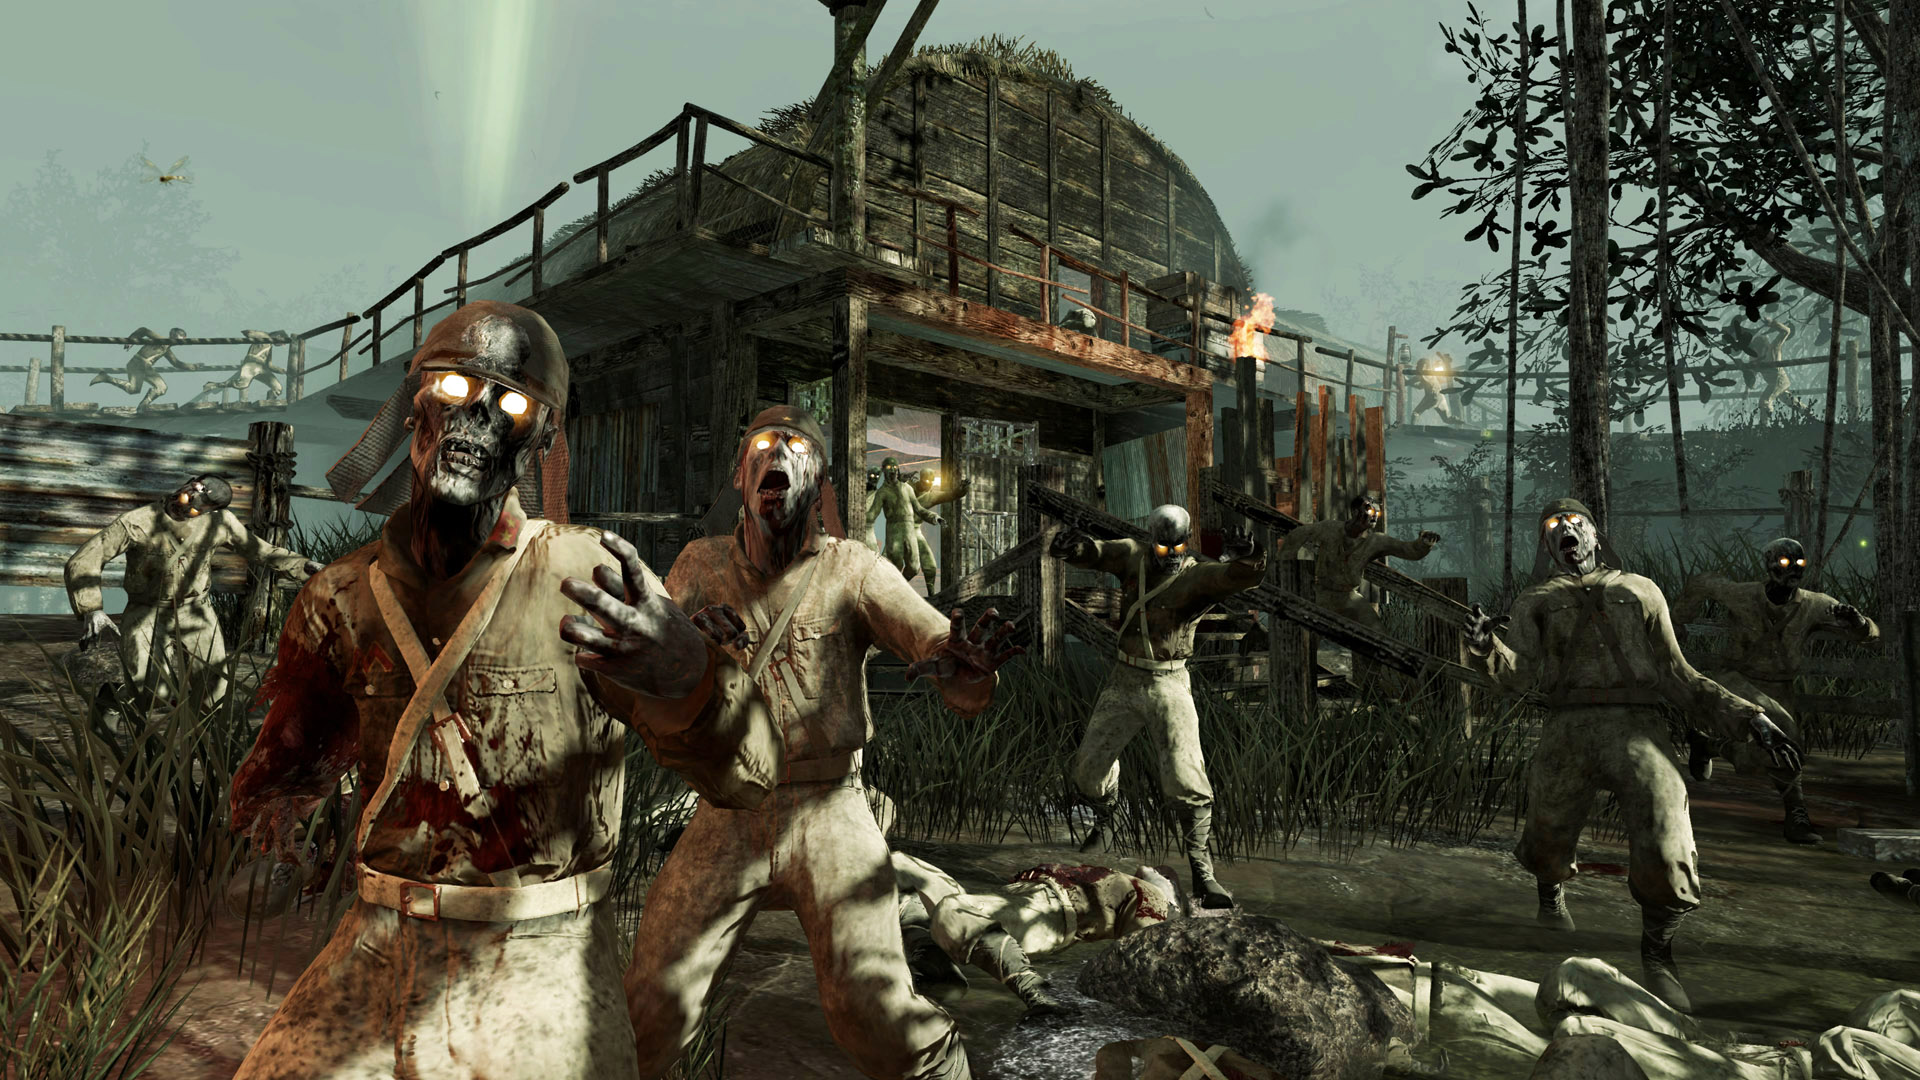 Call Of Duty Zombie Wallpaper High Resolution